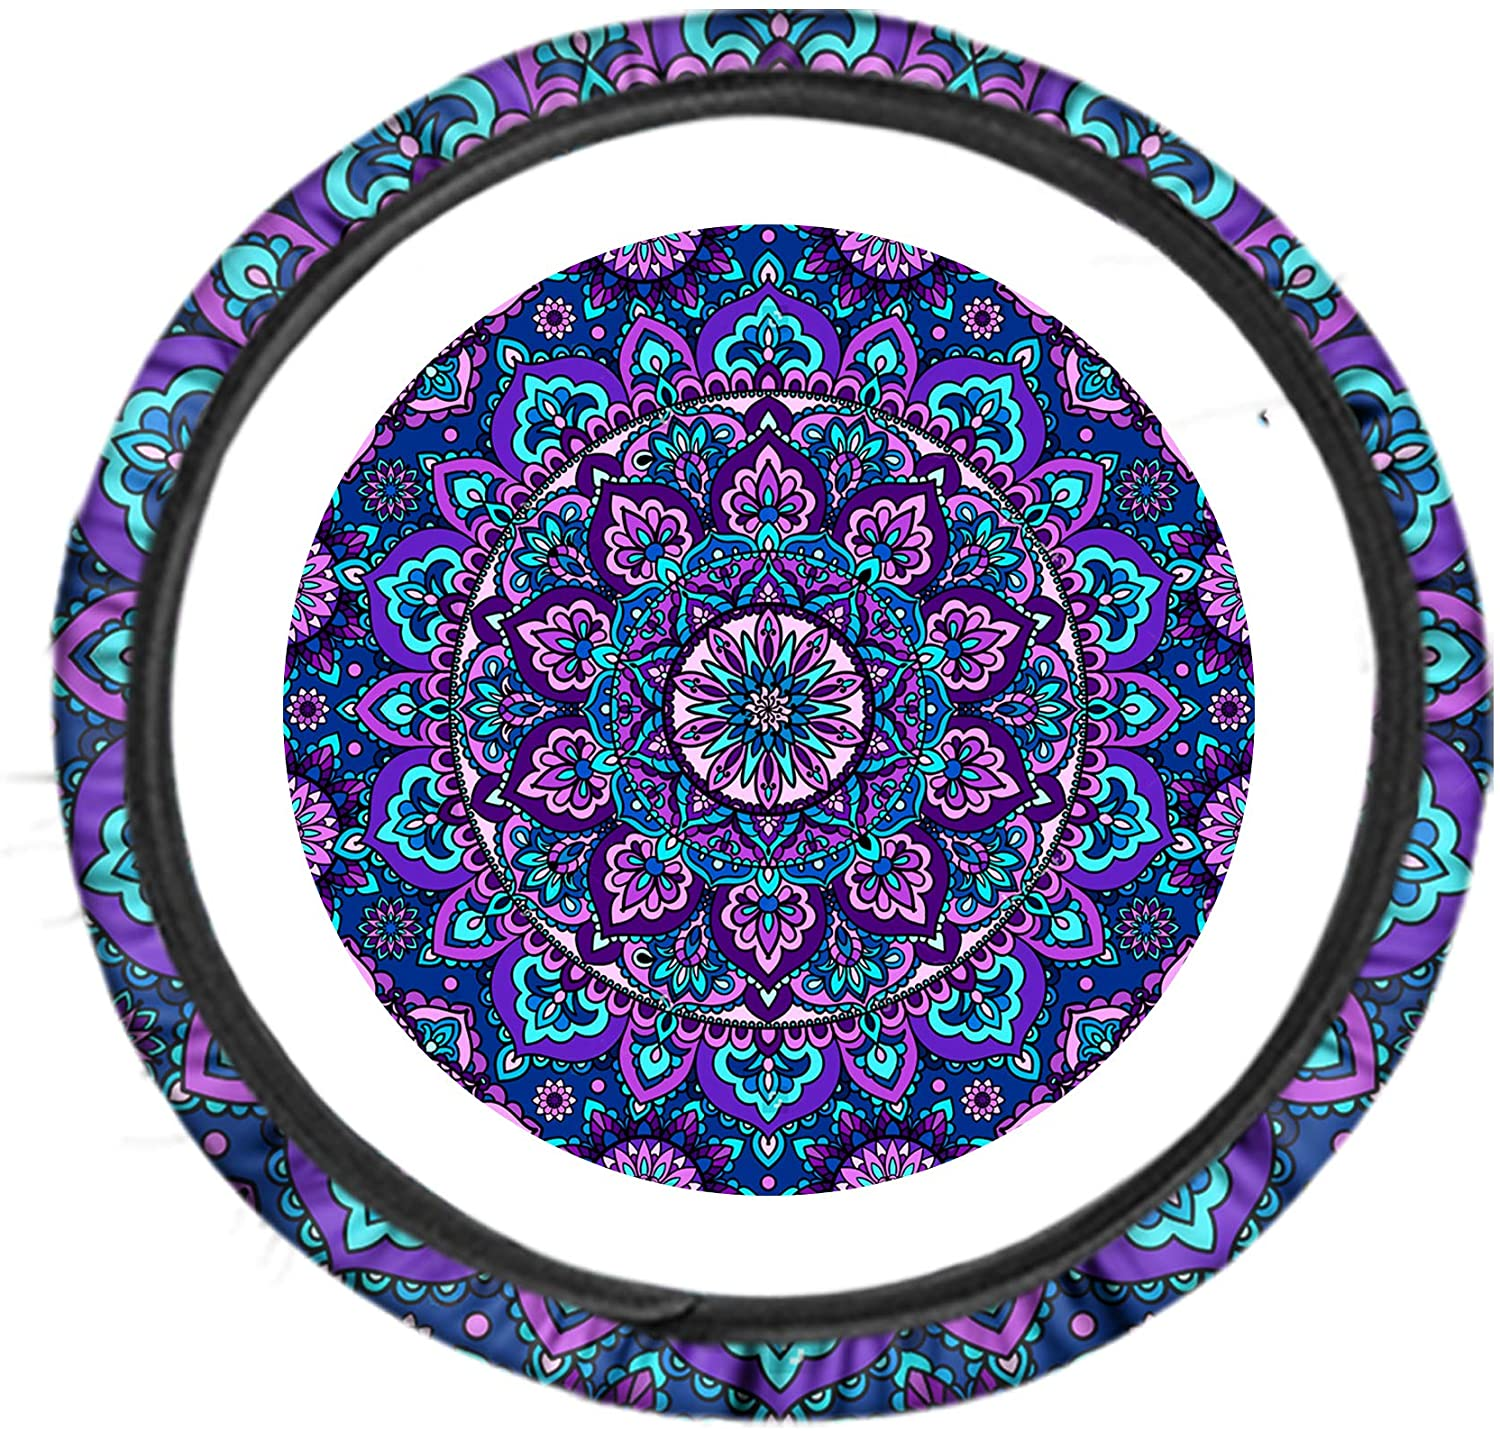 Youngerbaby Mandala Printed Steering Wheel Cover Stretch-on Fabric Anti-Slip and Sweat-Absorption 15 Inch Car Wrap Cover Universal Fit (Mandala 1)